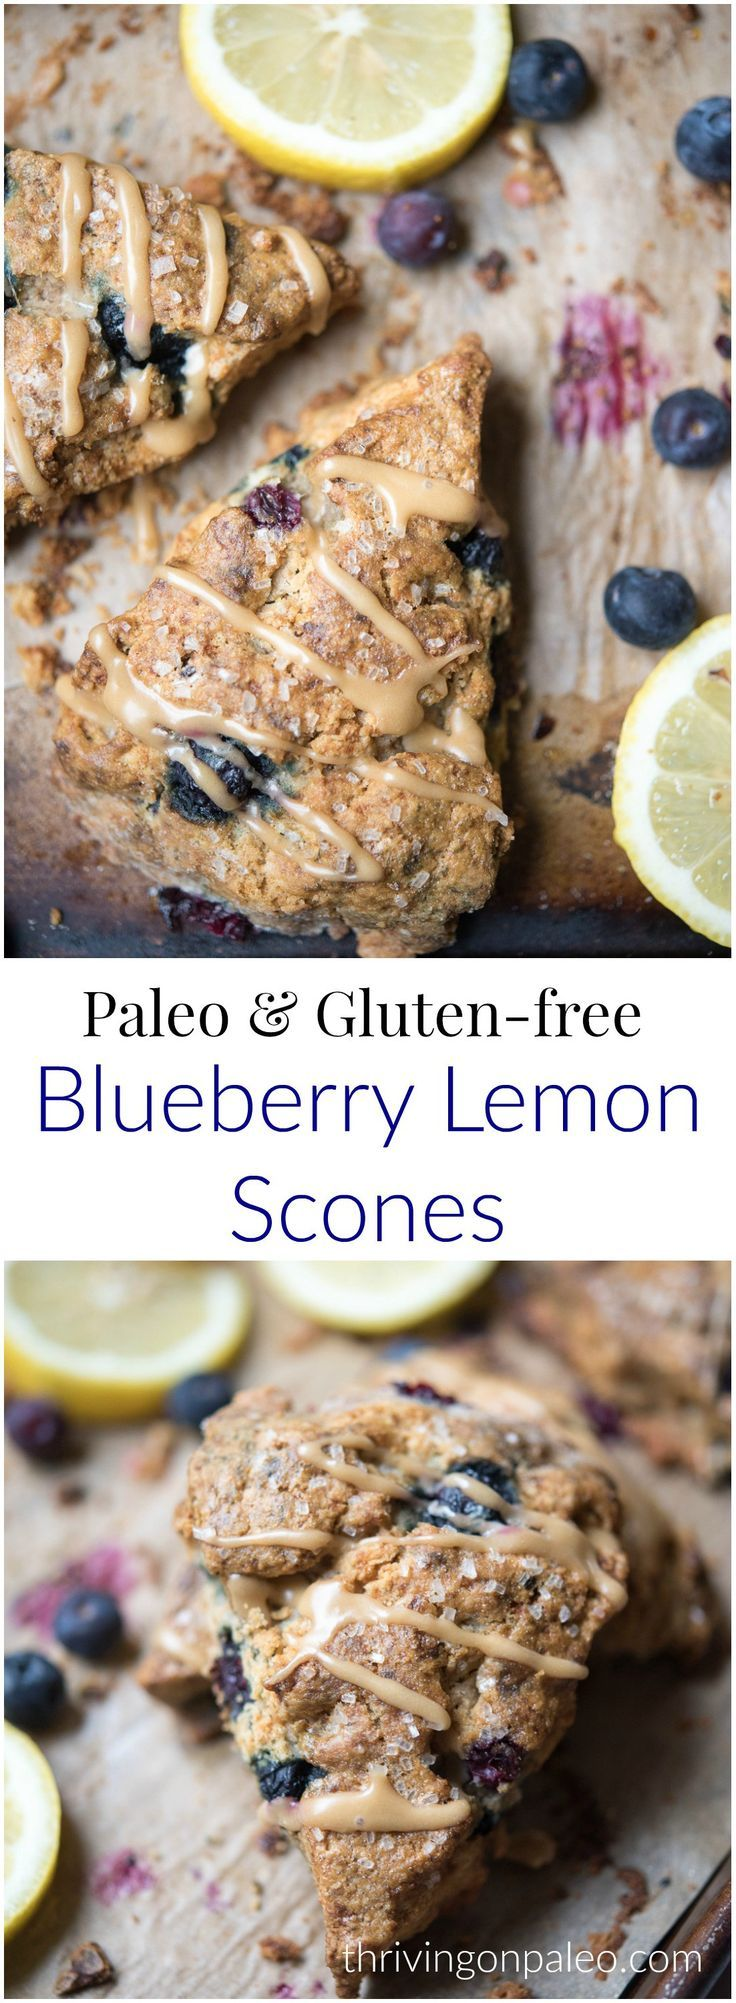 Blueberry Lemon Scones - a Paleo, gluten-free, and grain-free breakfast or snack recipe that is flaky and buttery, especially with the irresistible lemon glaze! #paleobreakfastrecipes #paleoscones